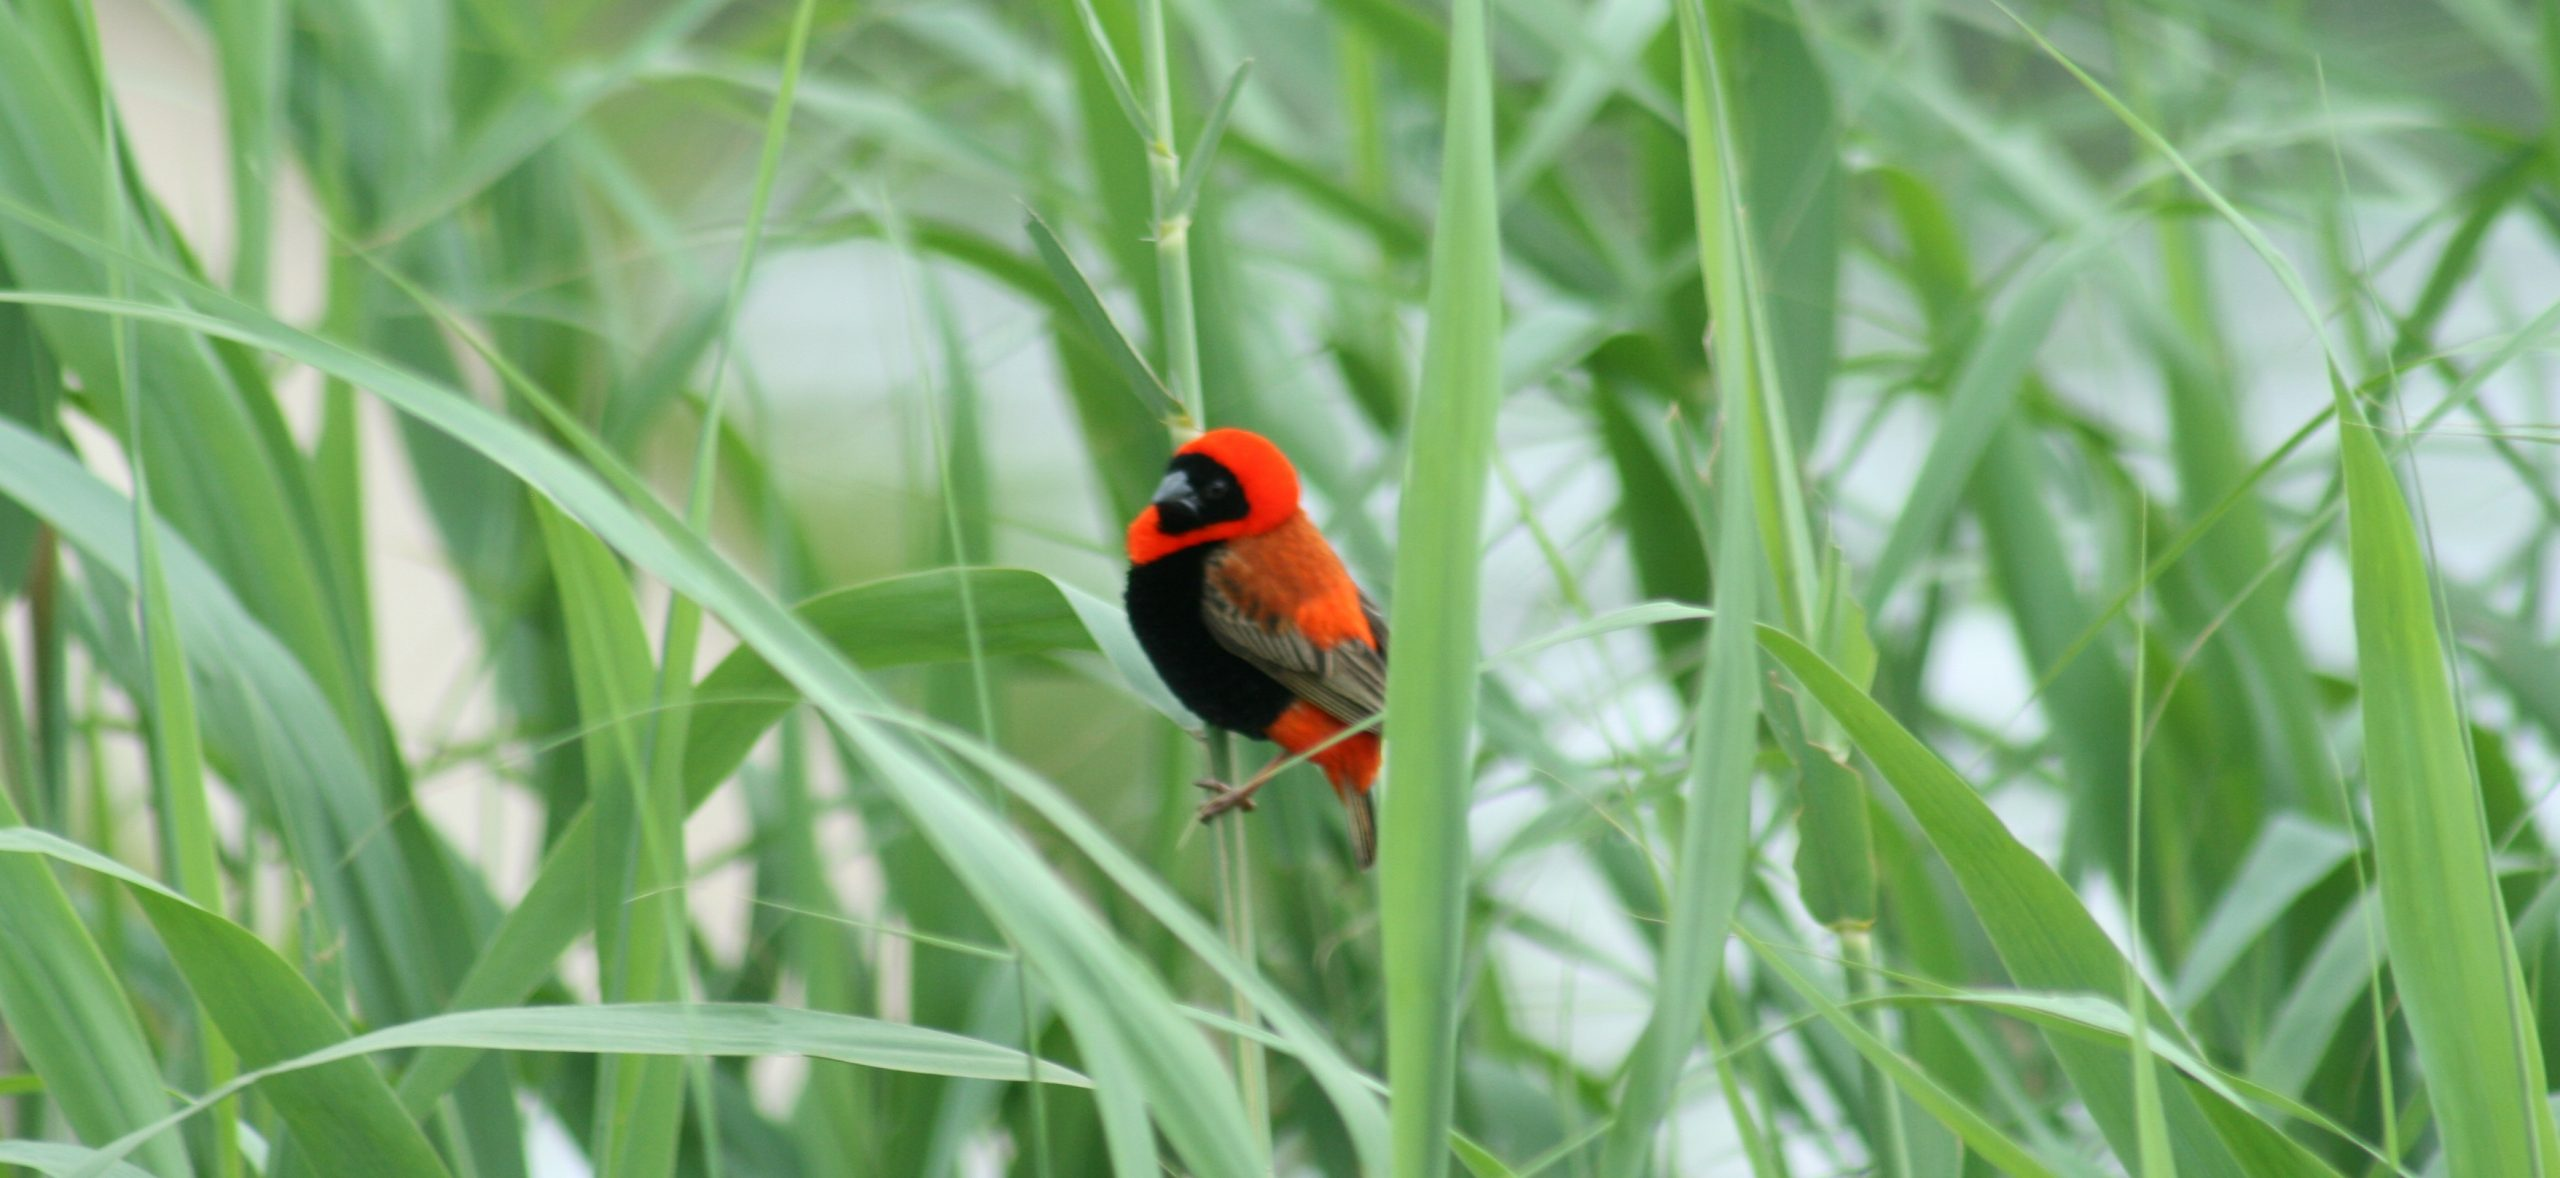 The southern red bishop